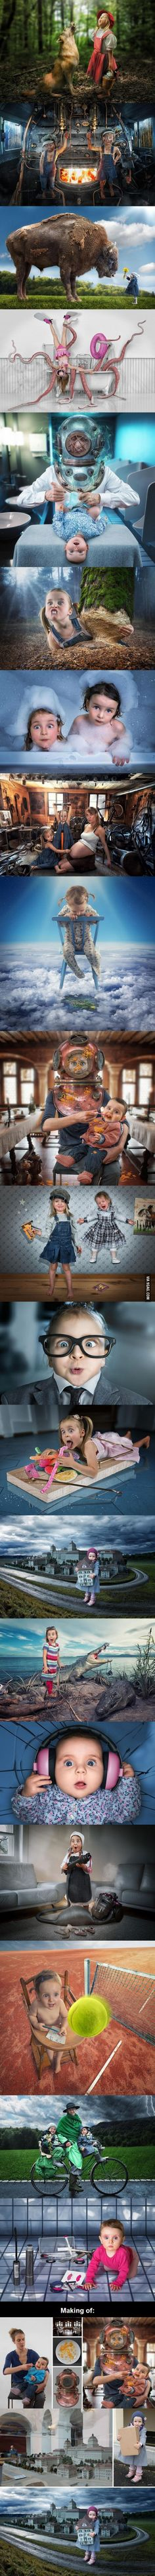 Creative Father Makes Crazy Photo Manipulations With His Three Daughters.